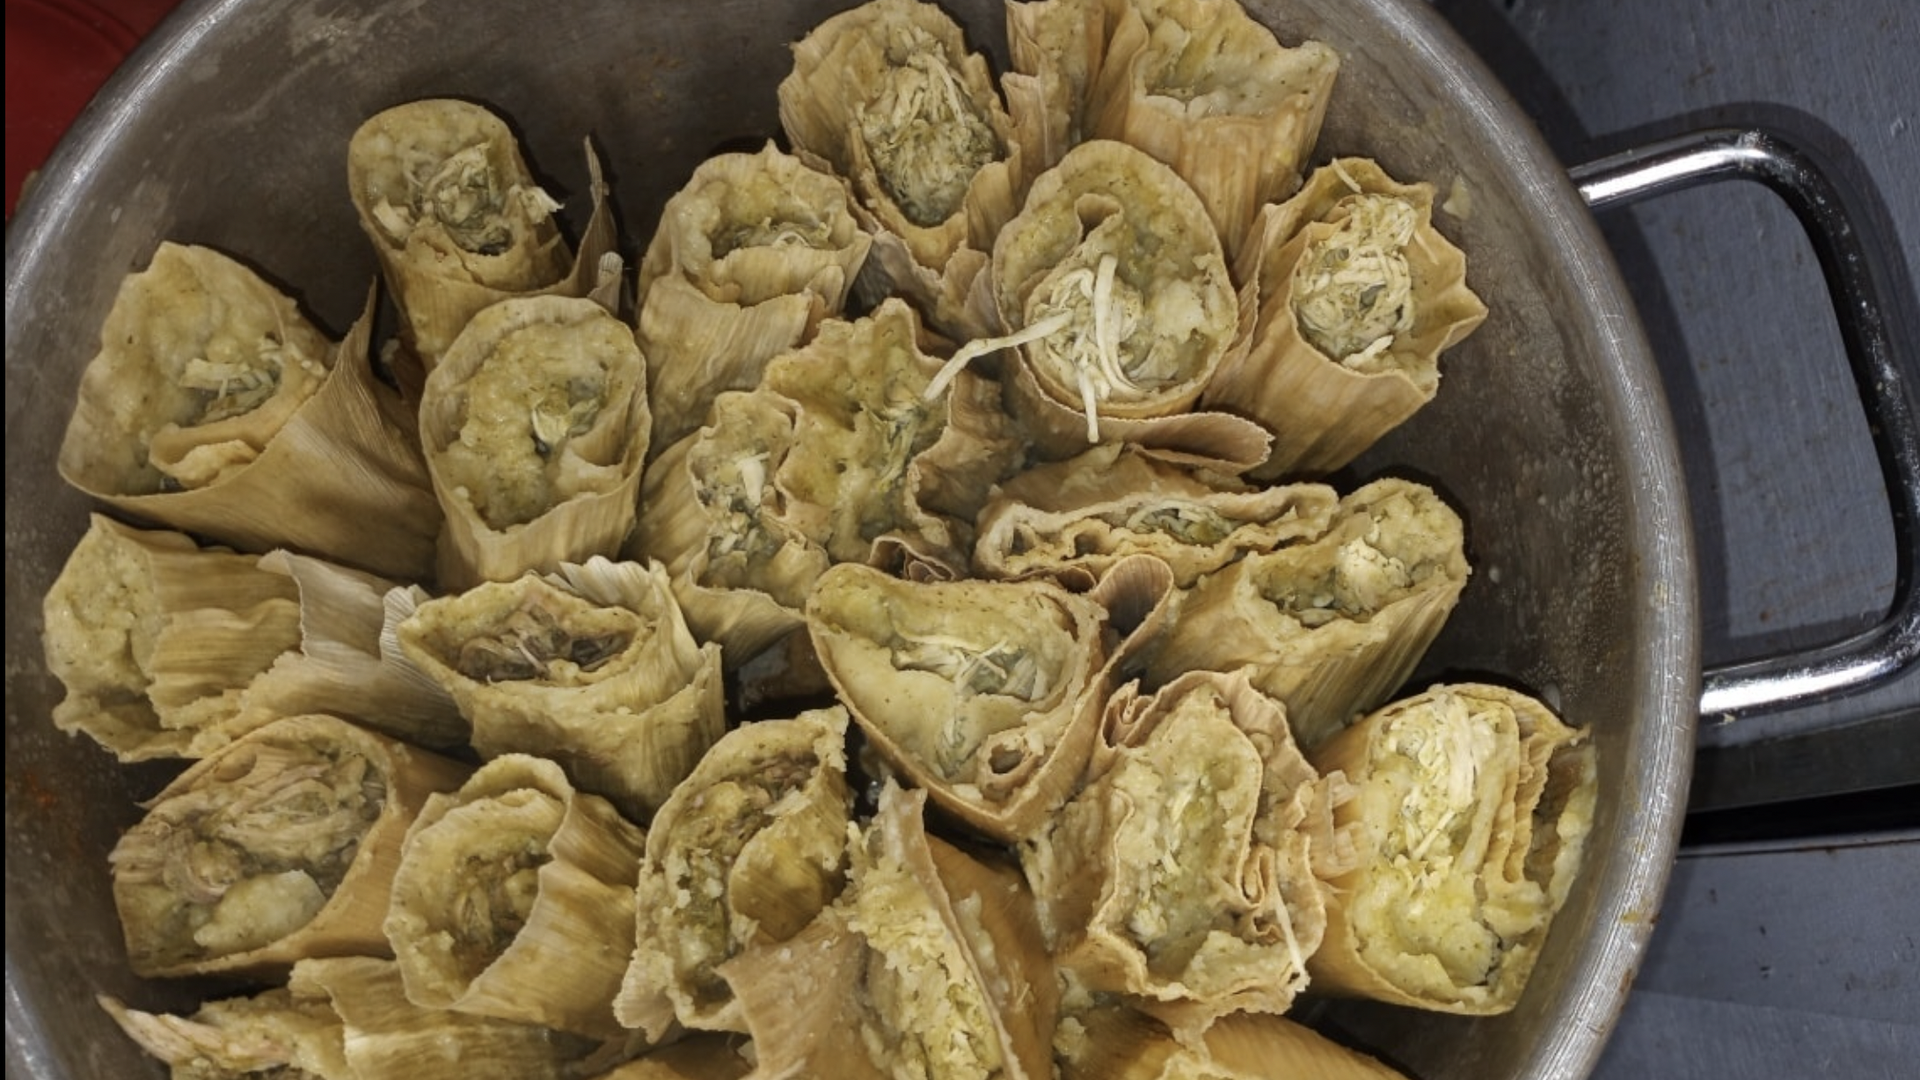 A pot filled with green tamales.